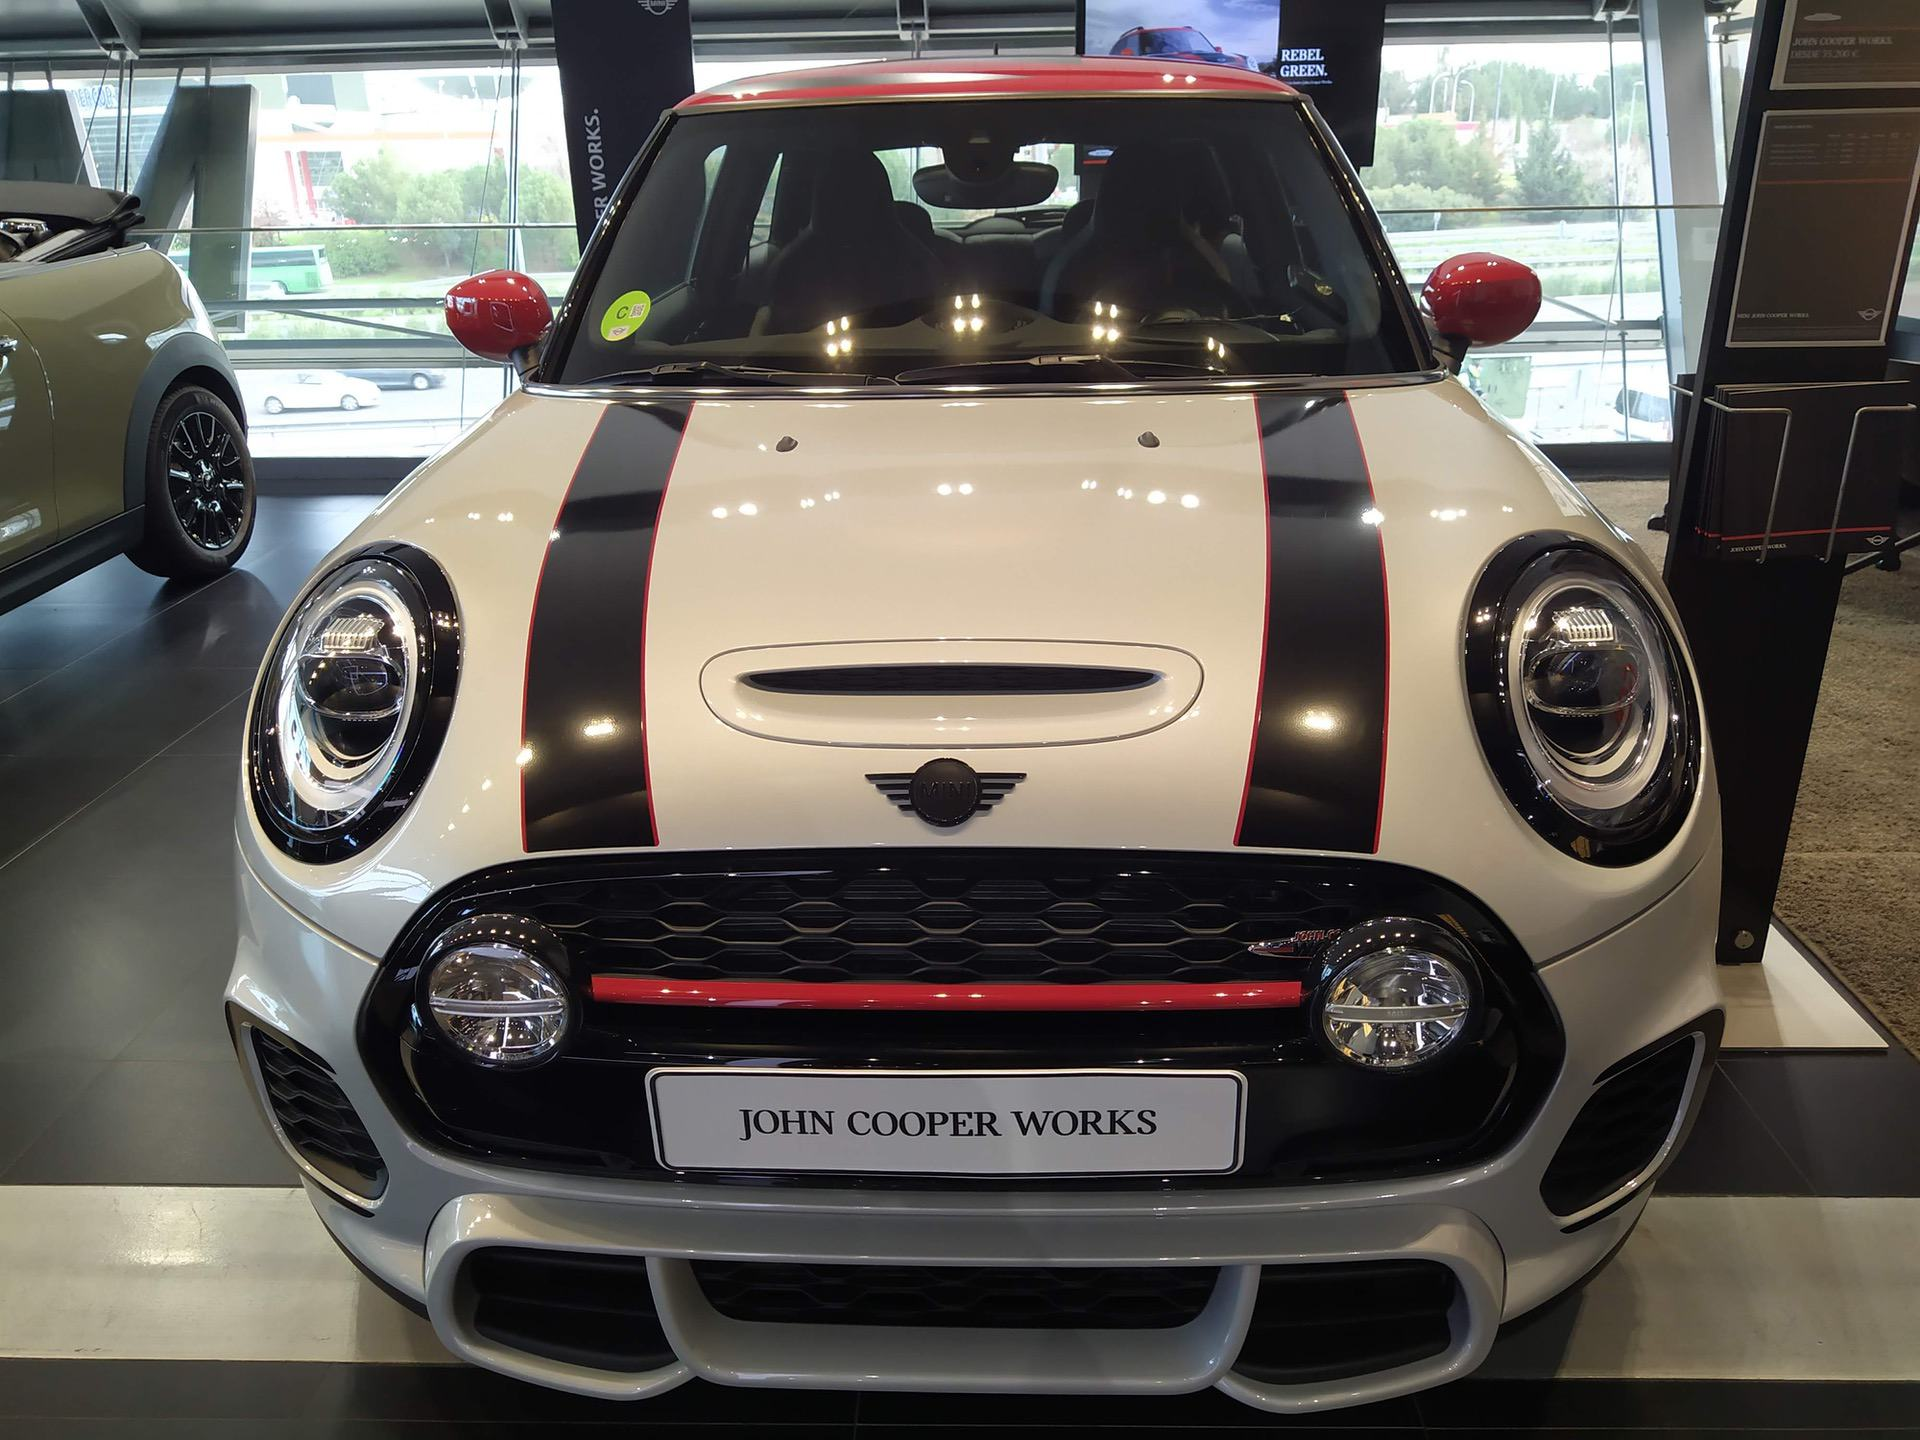 MINI JCW F56 decked out with lots of performance parts